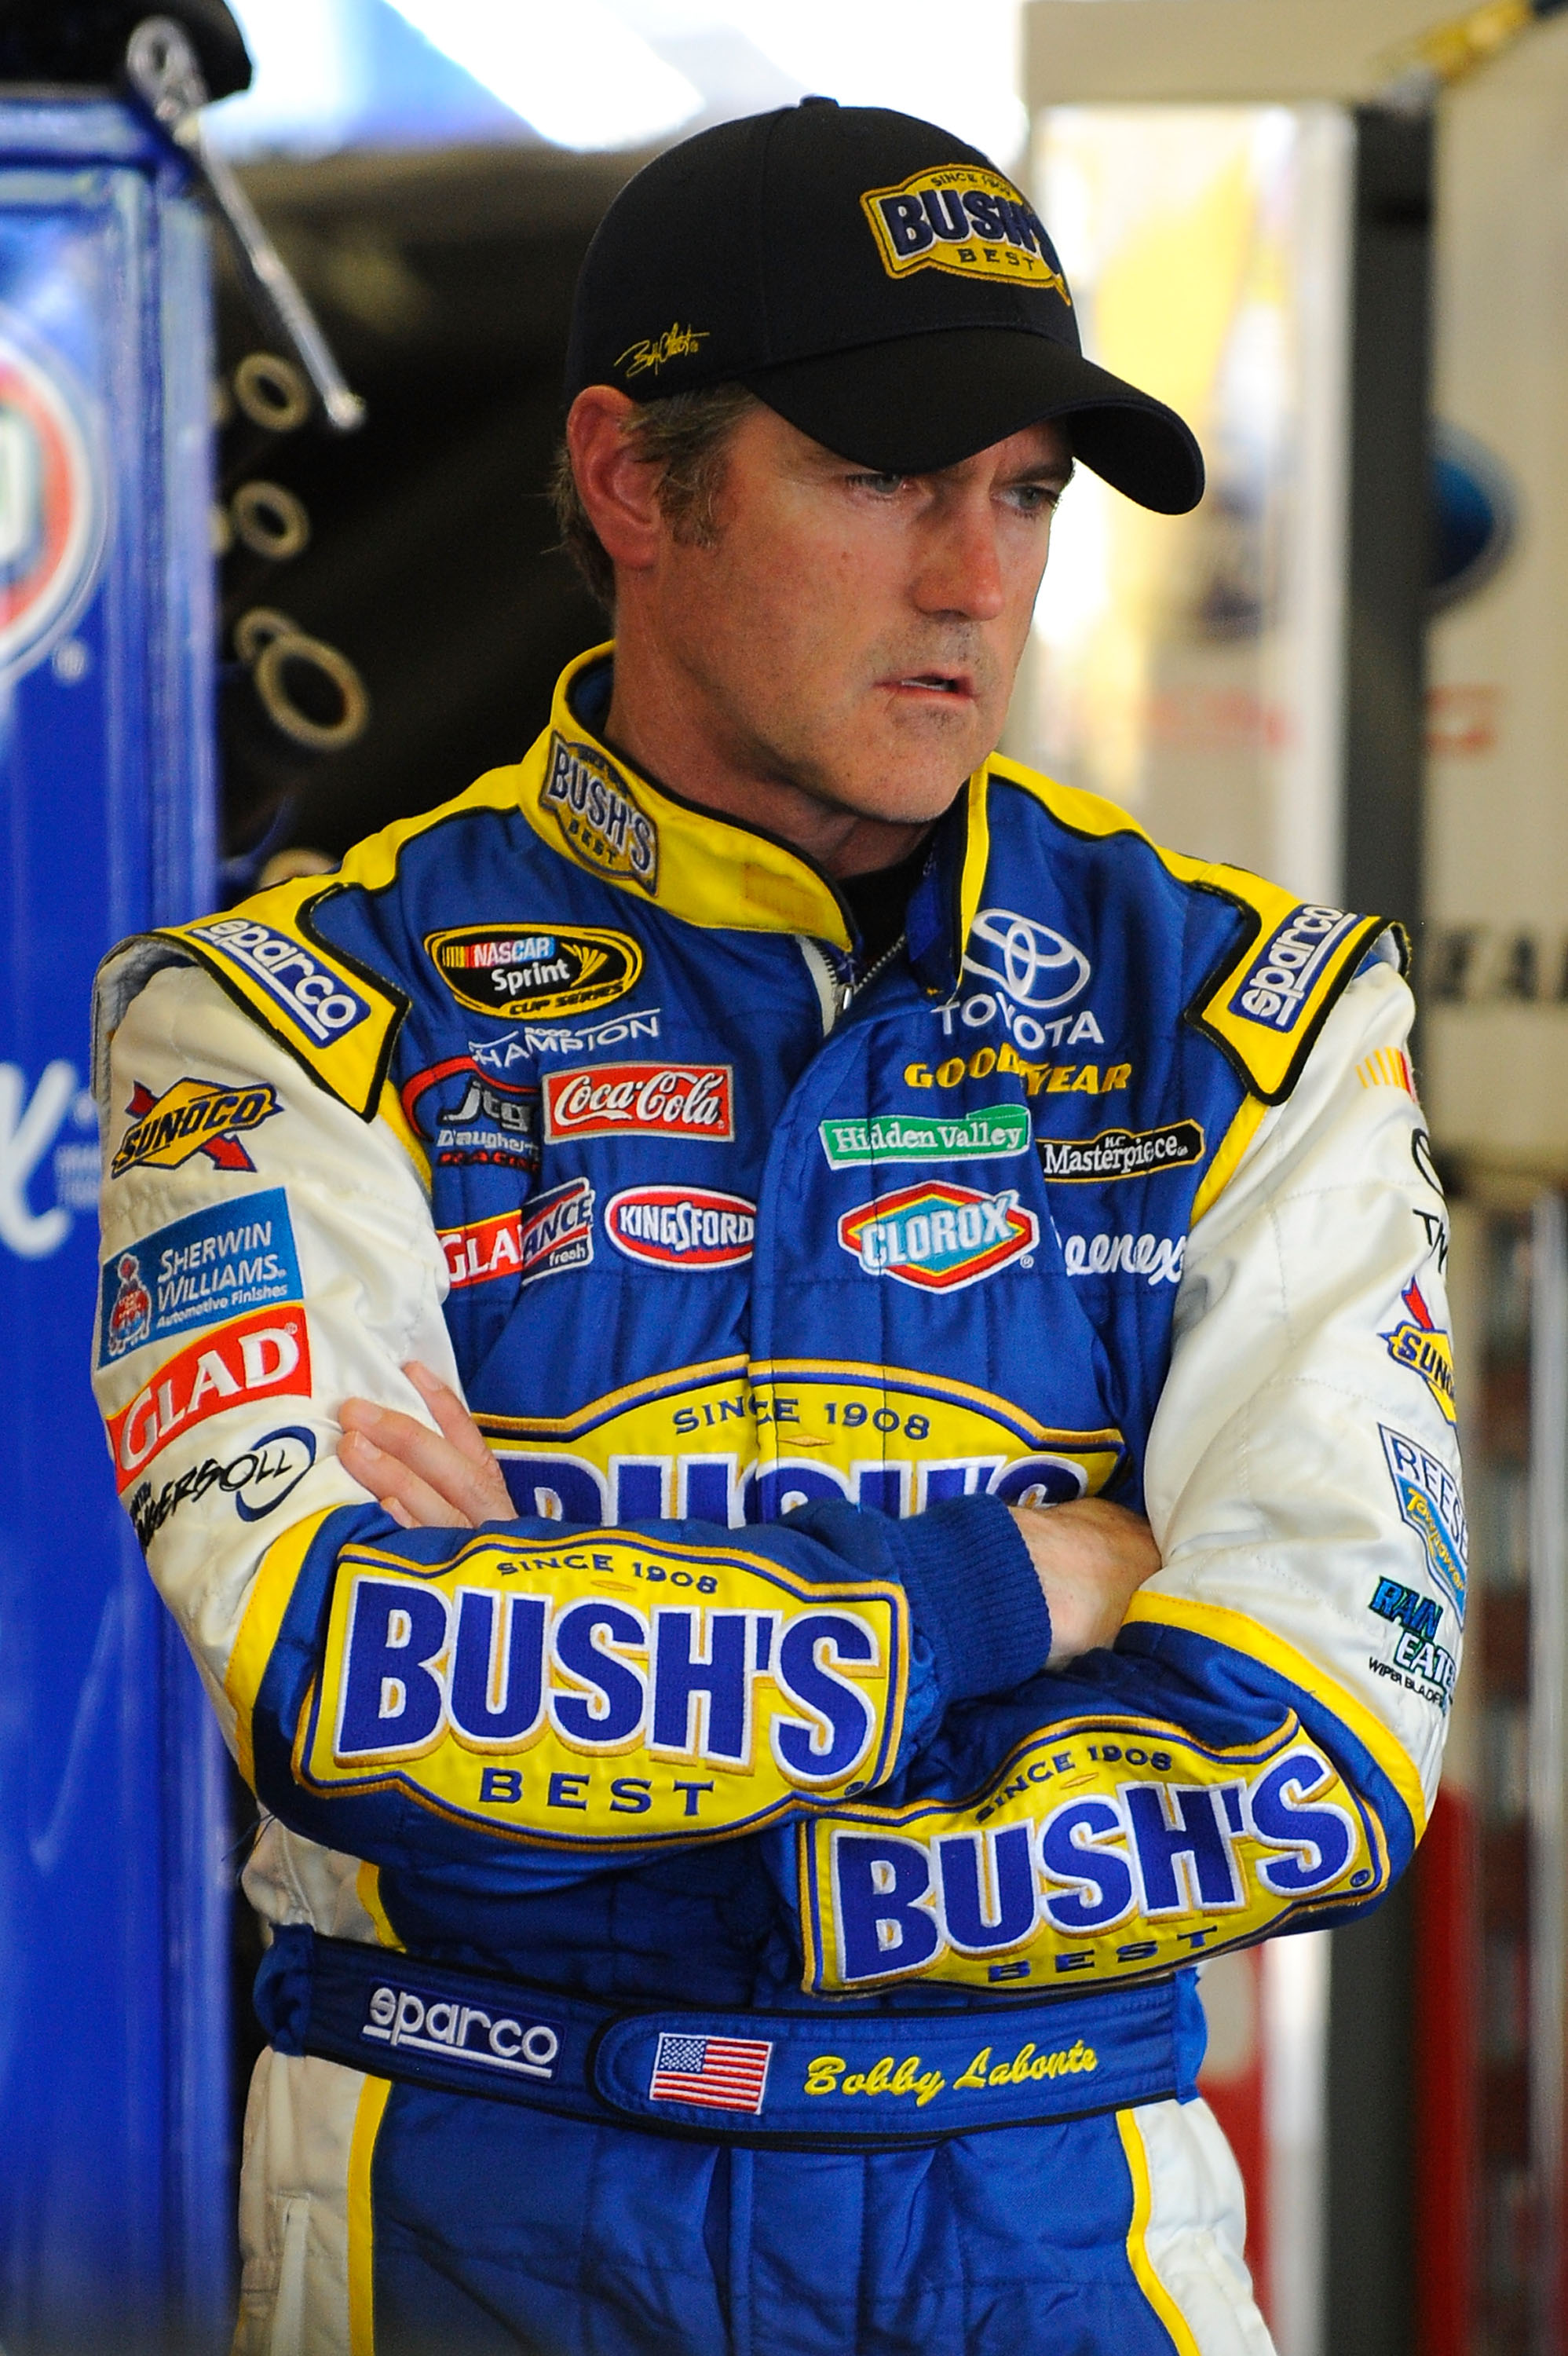 FORT WORTH, TX - APRIL 07:  Bobby Labonte, driver of the #47 Bush's Baked Beans Toyota, stands in the garage area during practice for the NASCAR Sprint Cup Series Samsung Mobile 500 at Texas Motor Speedway on April 7, 2011 in Fort Worth, Texas.  (Photo by